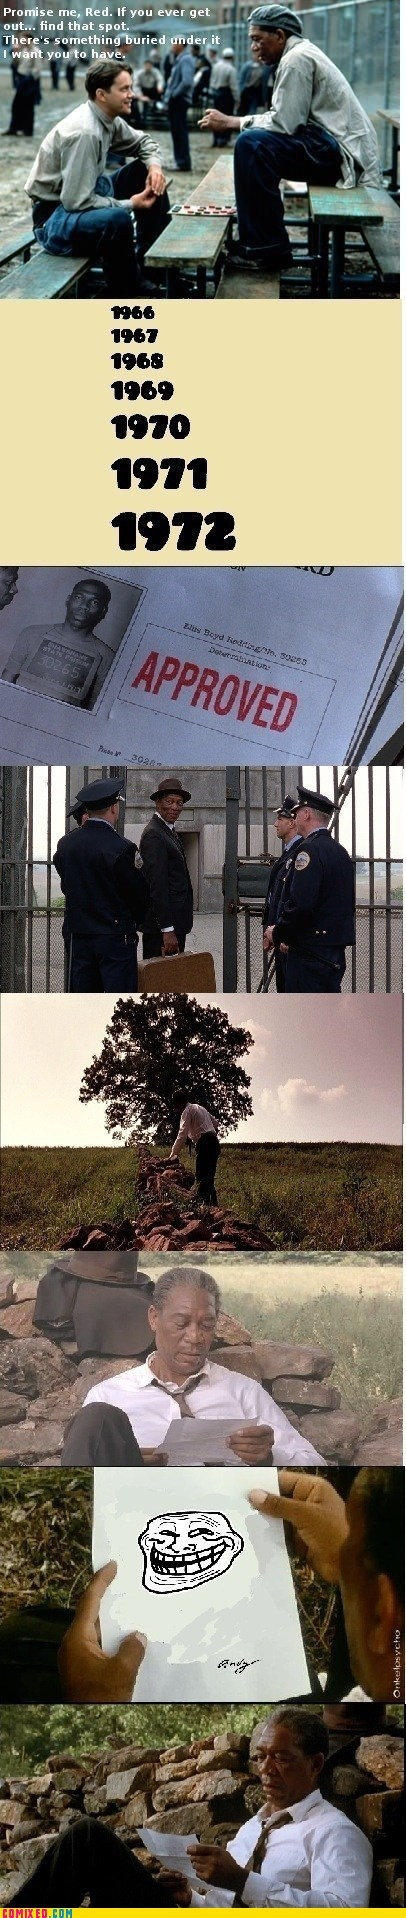 From the Movies Movie shawshank redemption troll